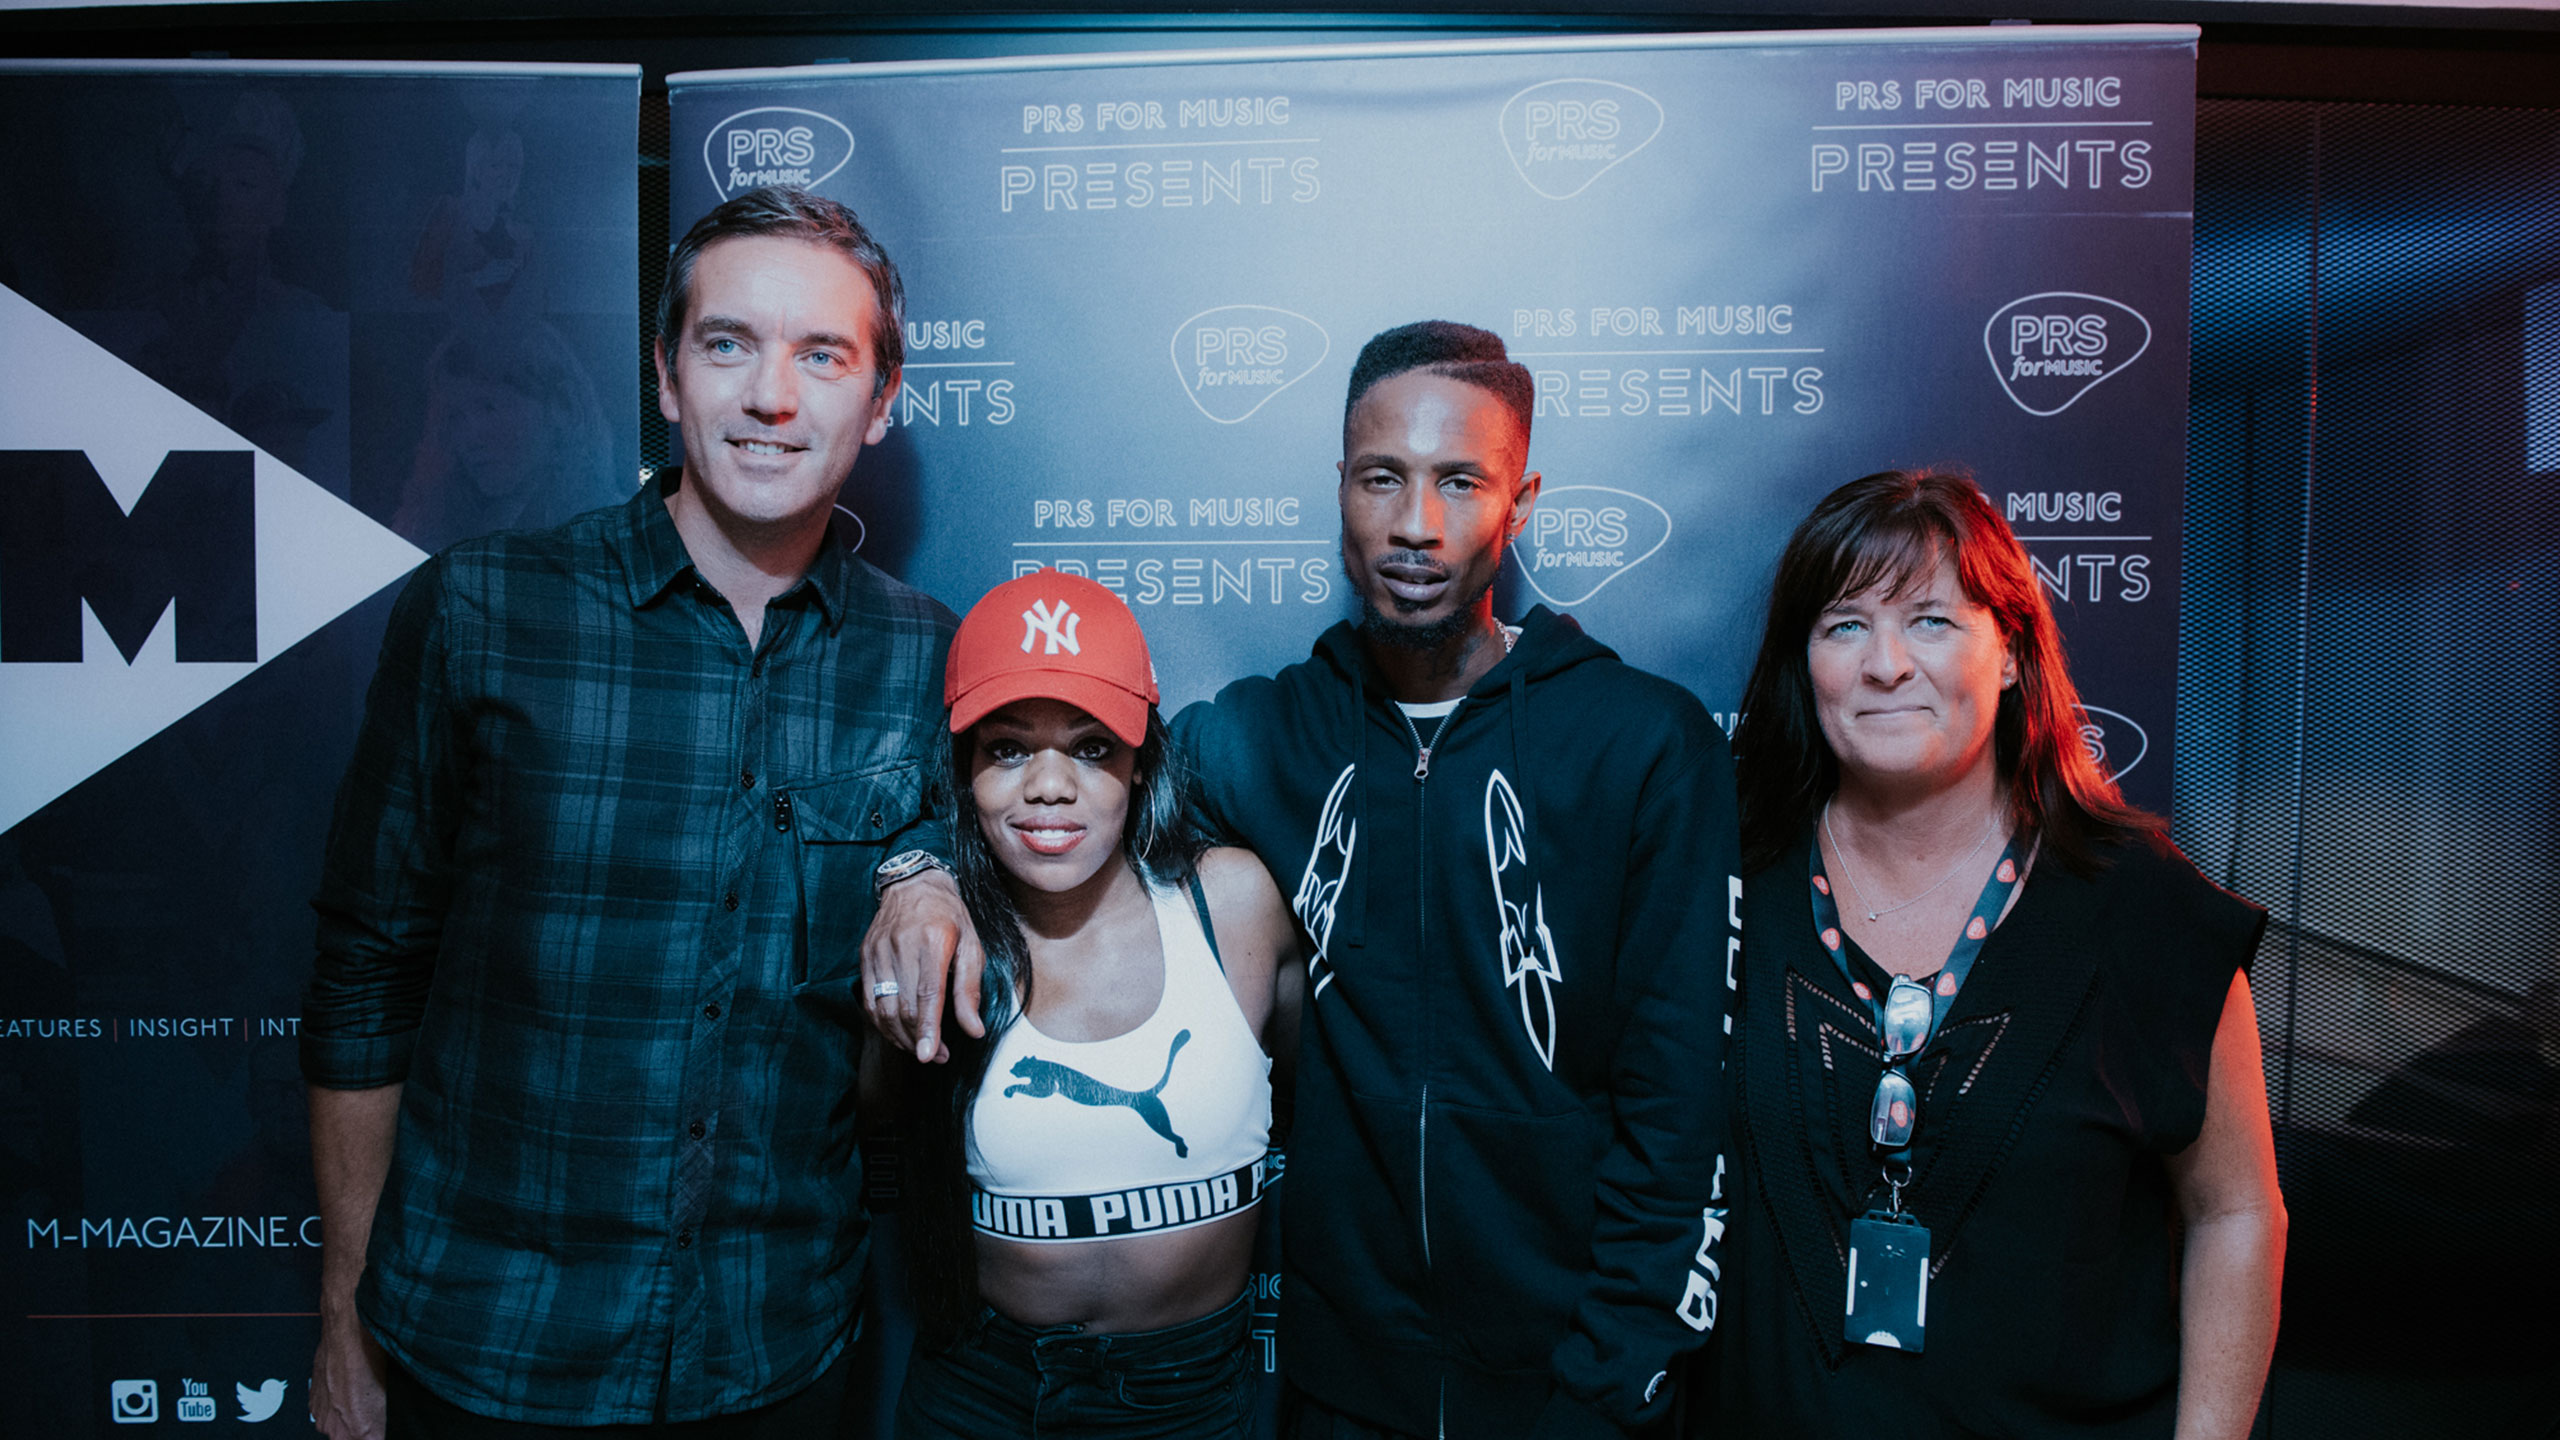 Paul Sims, Lady Leshurr, D Double E and Karen Buse at PRS for Music Presents